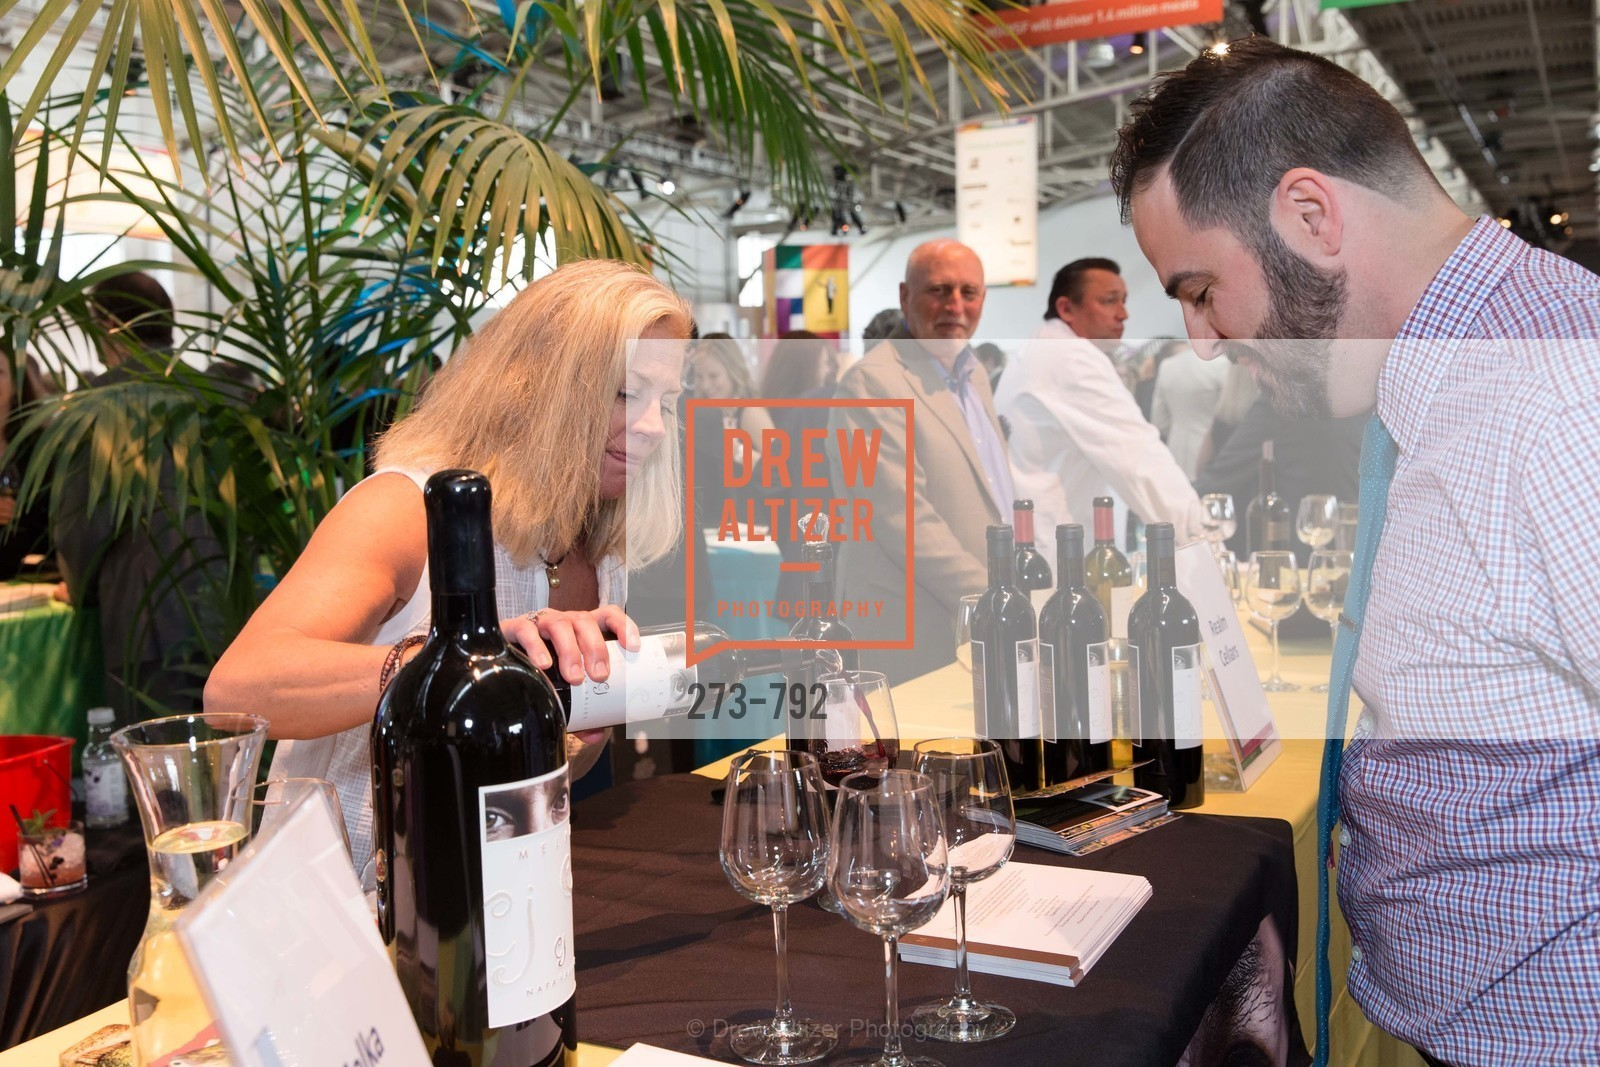 Melka Wines, MEALS ON WHEELS OF SAN FRANCISCO'S 28th Annual Star Chefs and Vintners Gala, US, April 19th, 2015,Drew Altizer, Drew Altizer Photography, full-service agency, private events, San Francisco photographer, photographer california